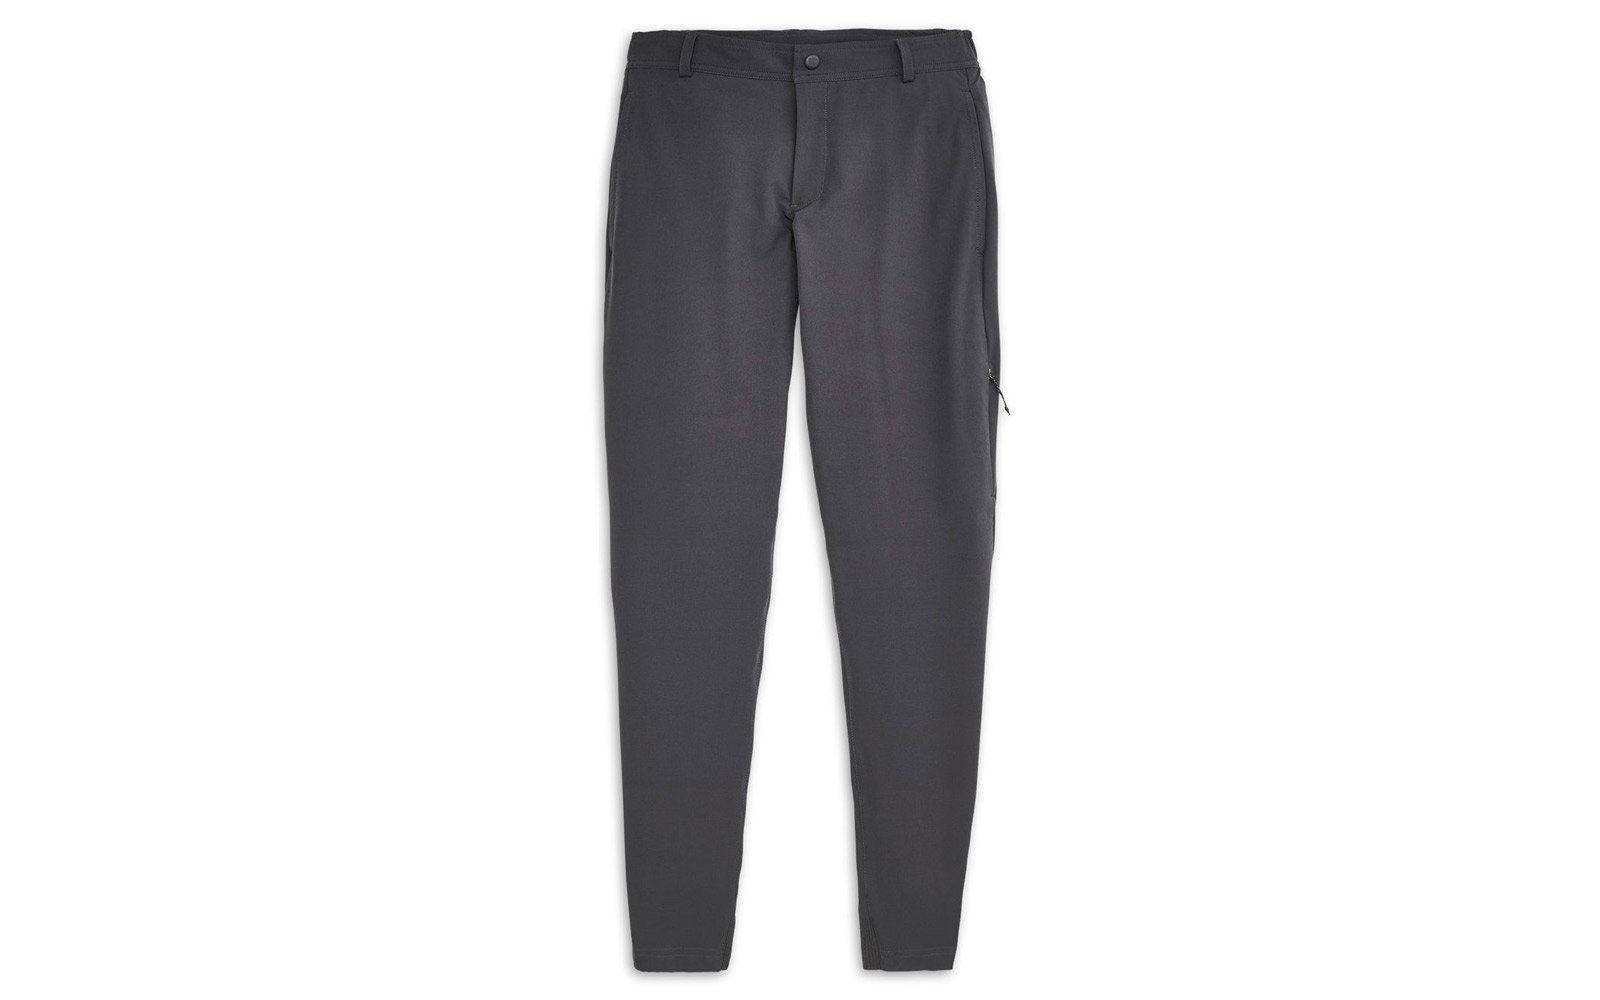 bd9998c44db The Best Men s Travel Pants for Every Type of Trip